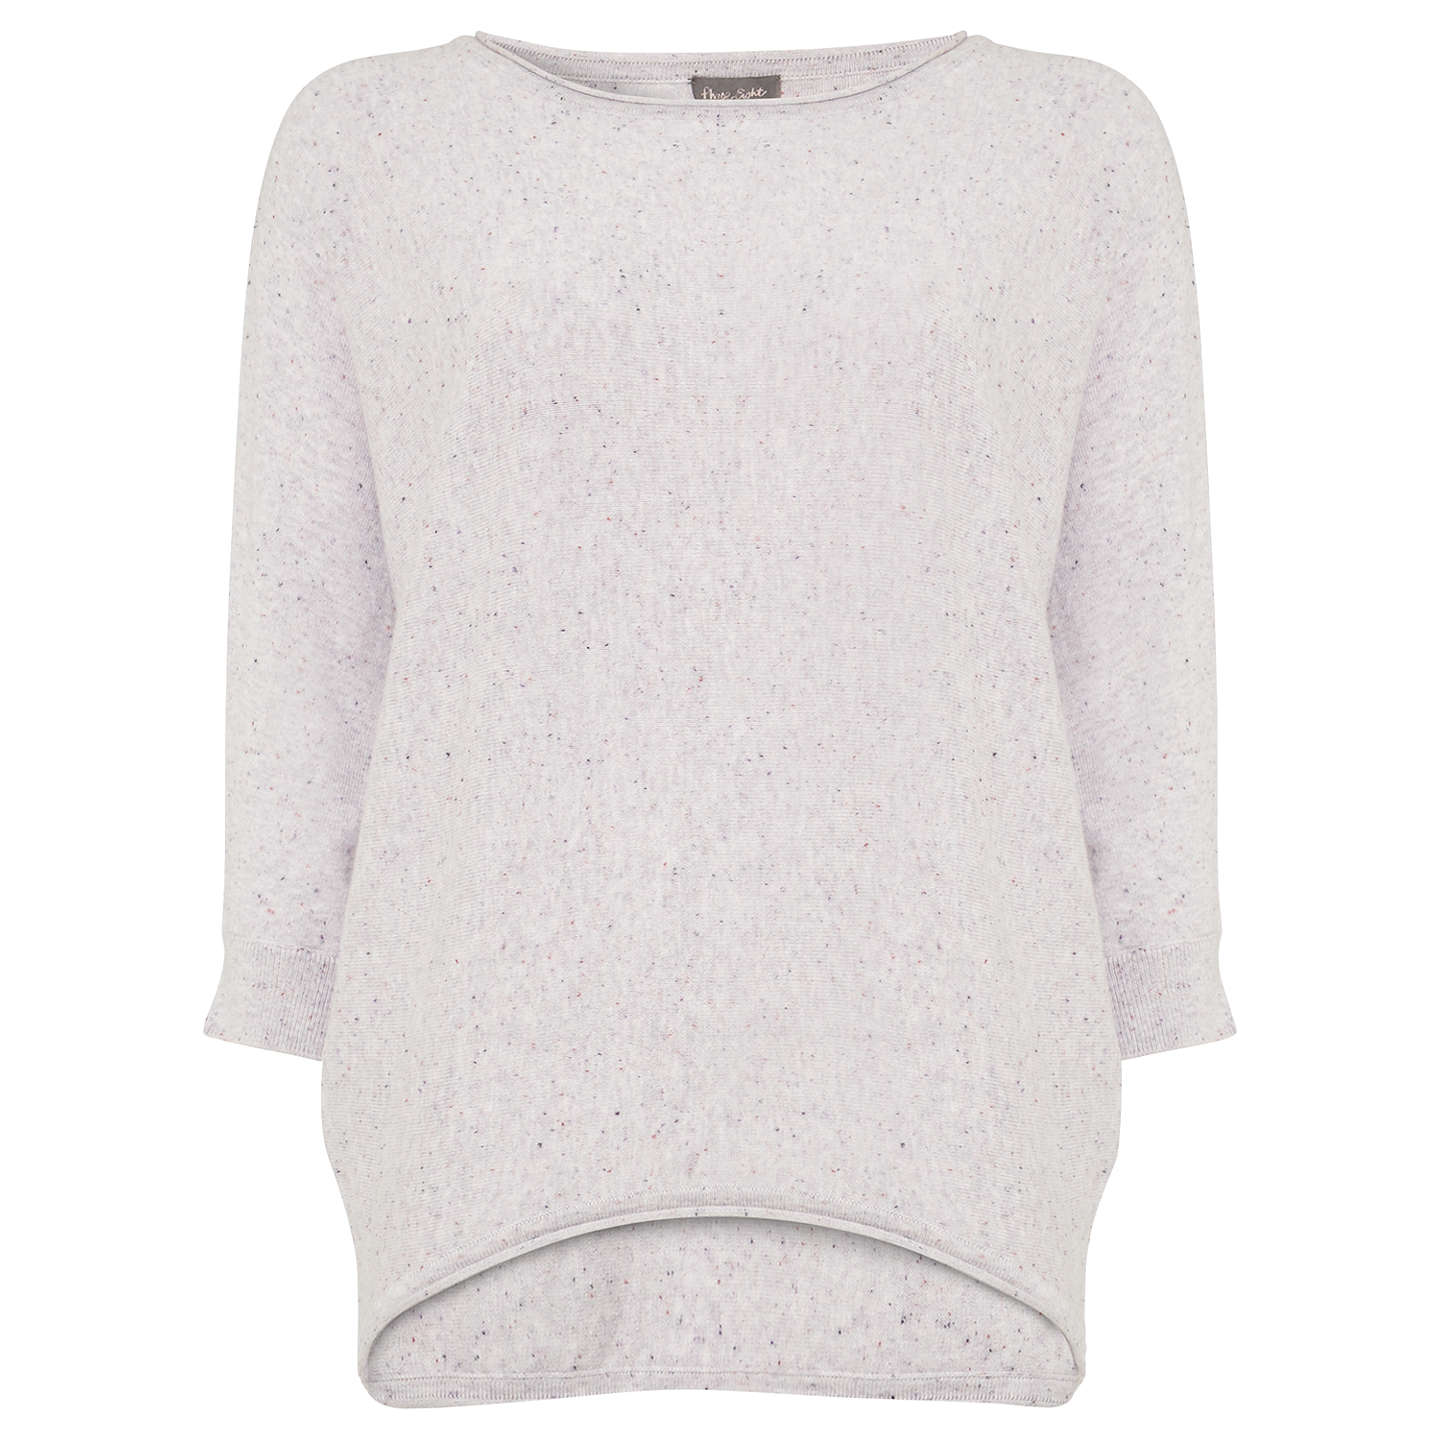 BuyPhase Eight Fleck Becca Jumper, Pansy, S Online at johnlewis.com